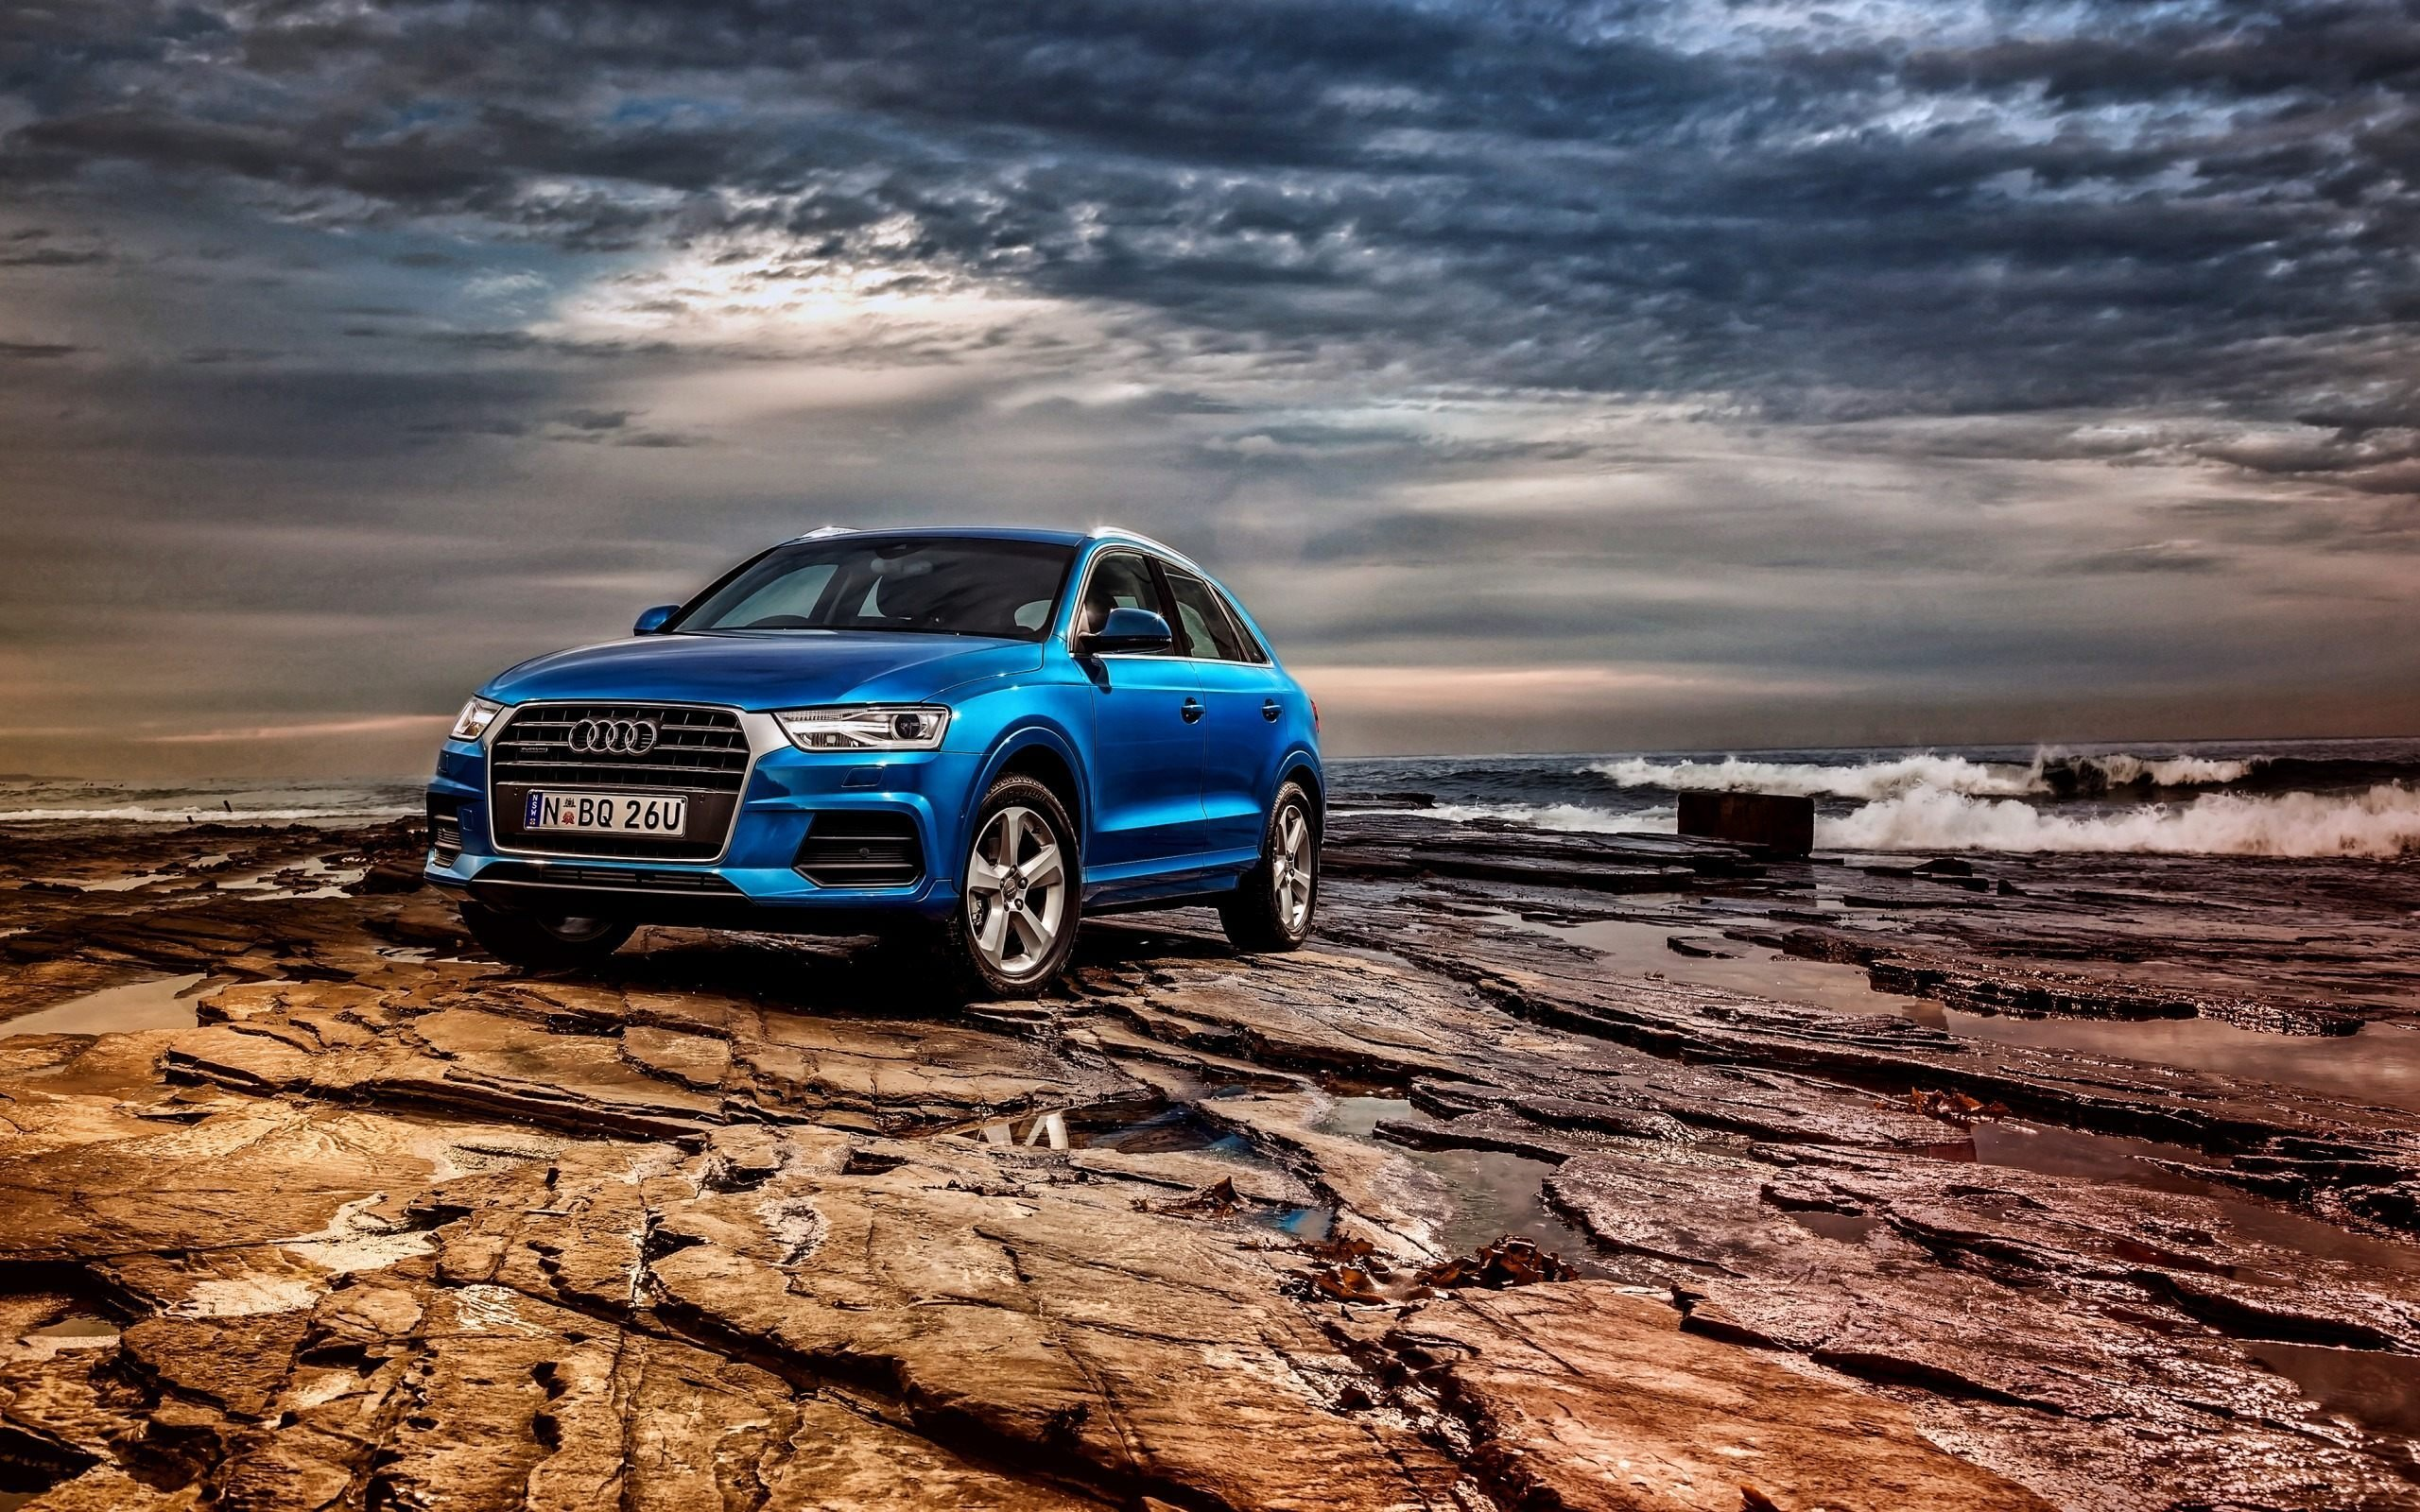 Latest Audi Rs Q3 Blue Full Hd 4K Wallpaper 4K Cars Wallpapers Free Download